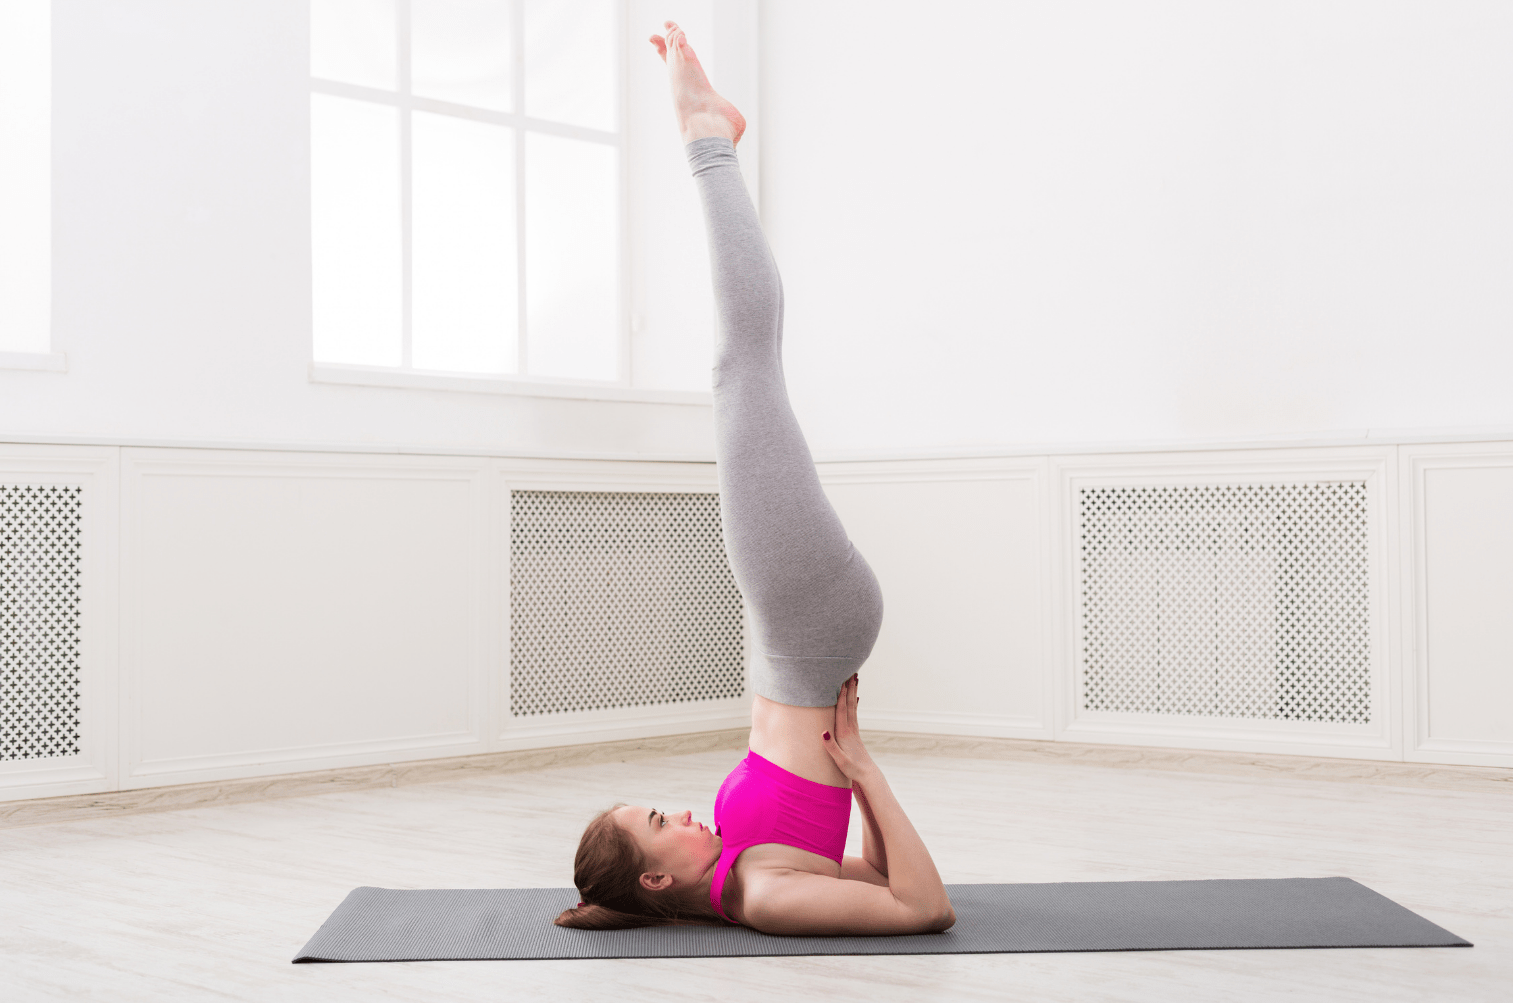 Shoulder Stand Pose How To Get Glowing Skin In 2 Weeks Naturally